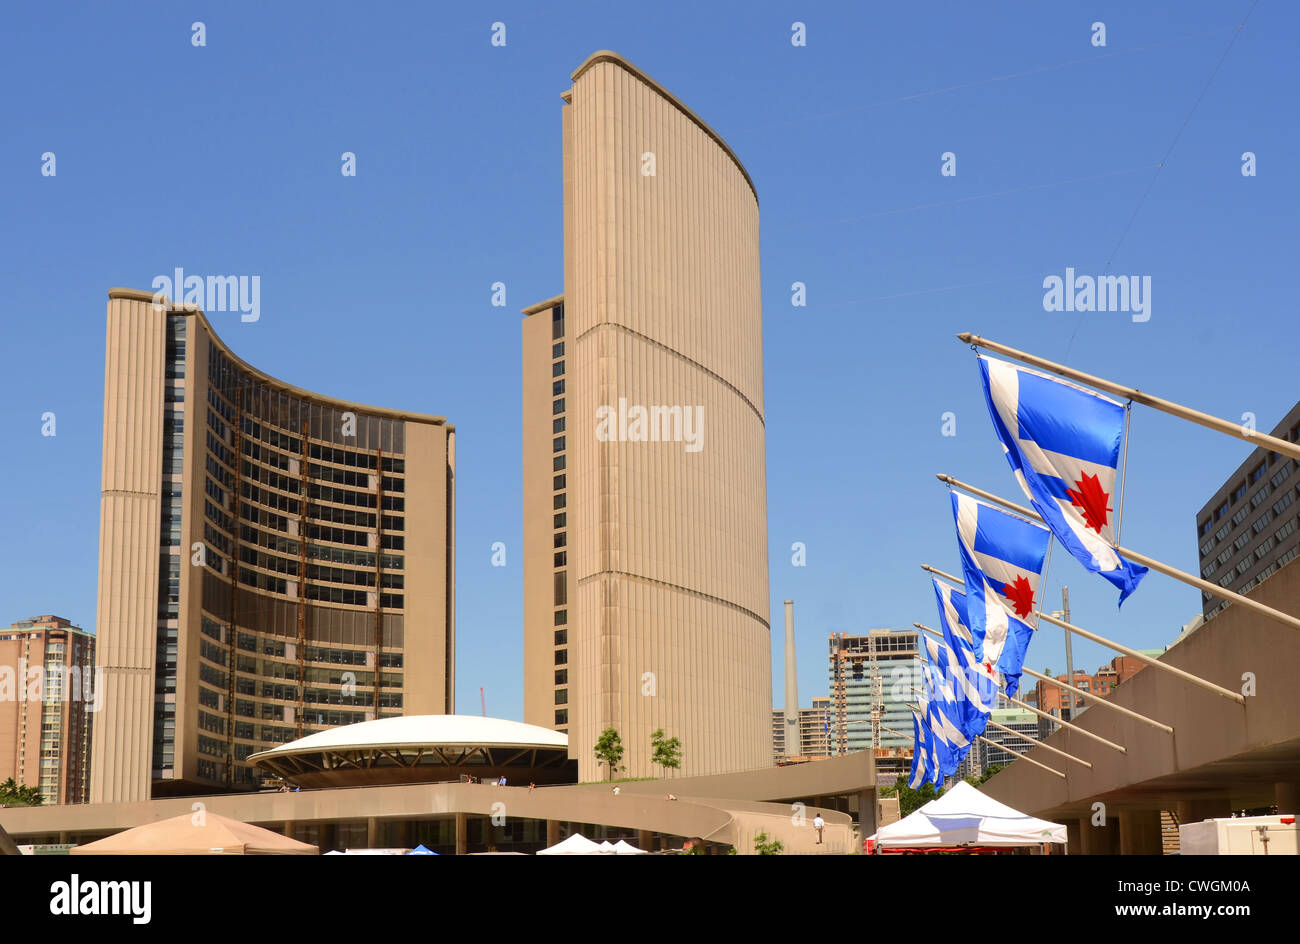 The blue and red flags of Toronto flying outside the City Hall at Nathan Phillips Square,Toronto, Ontario, Canada. - Stock Image